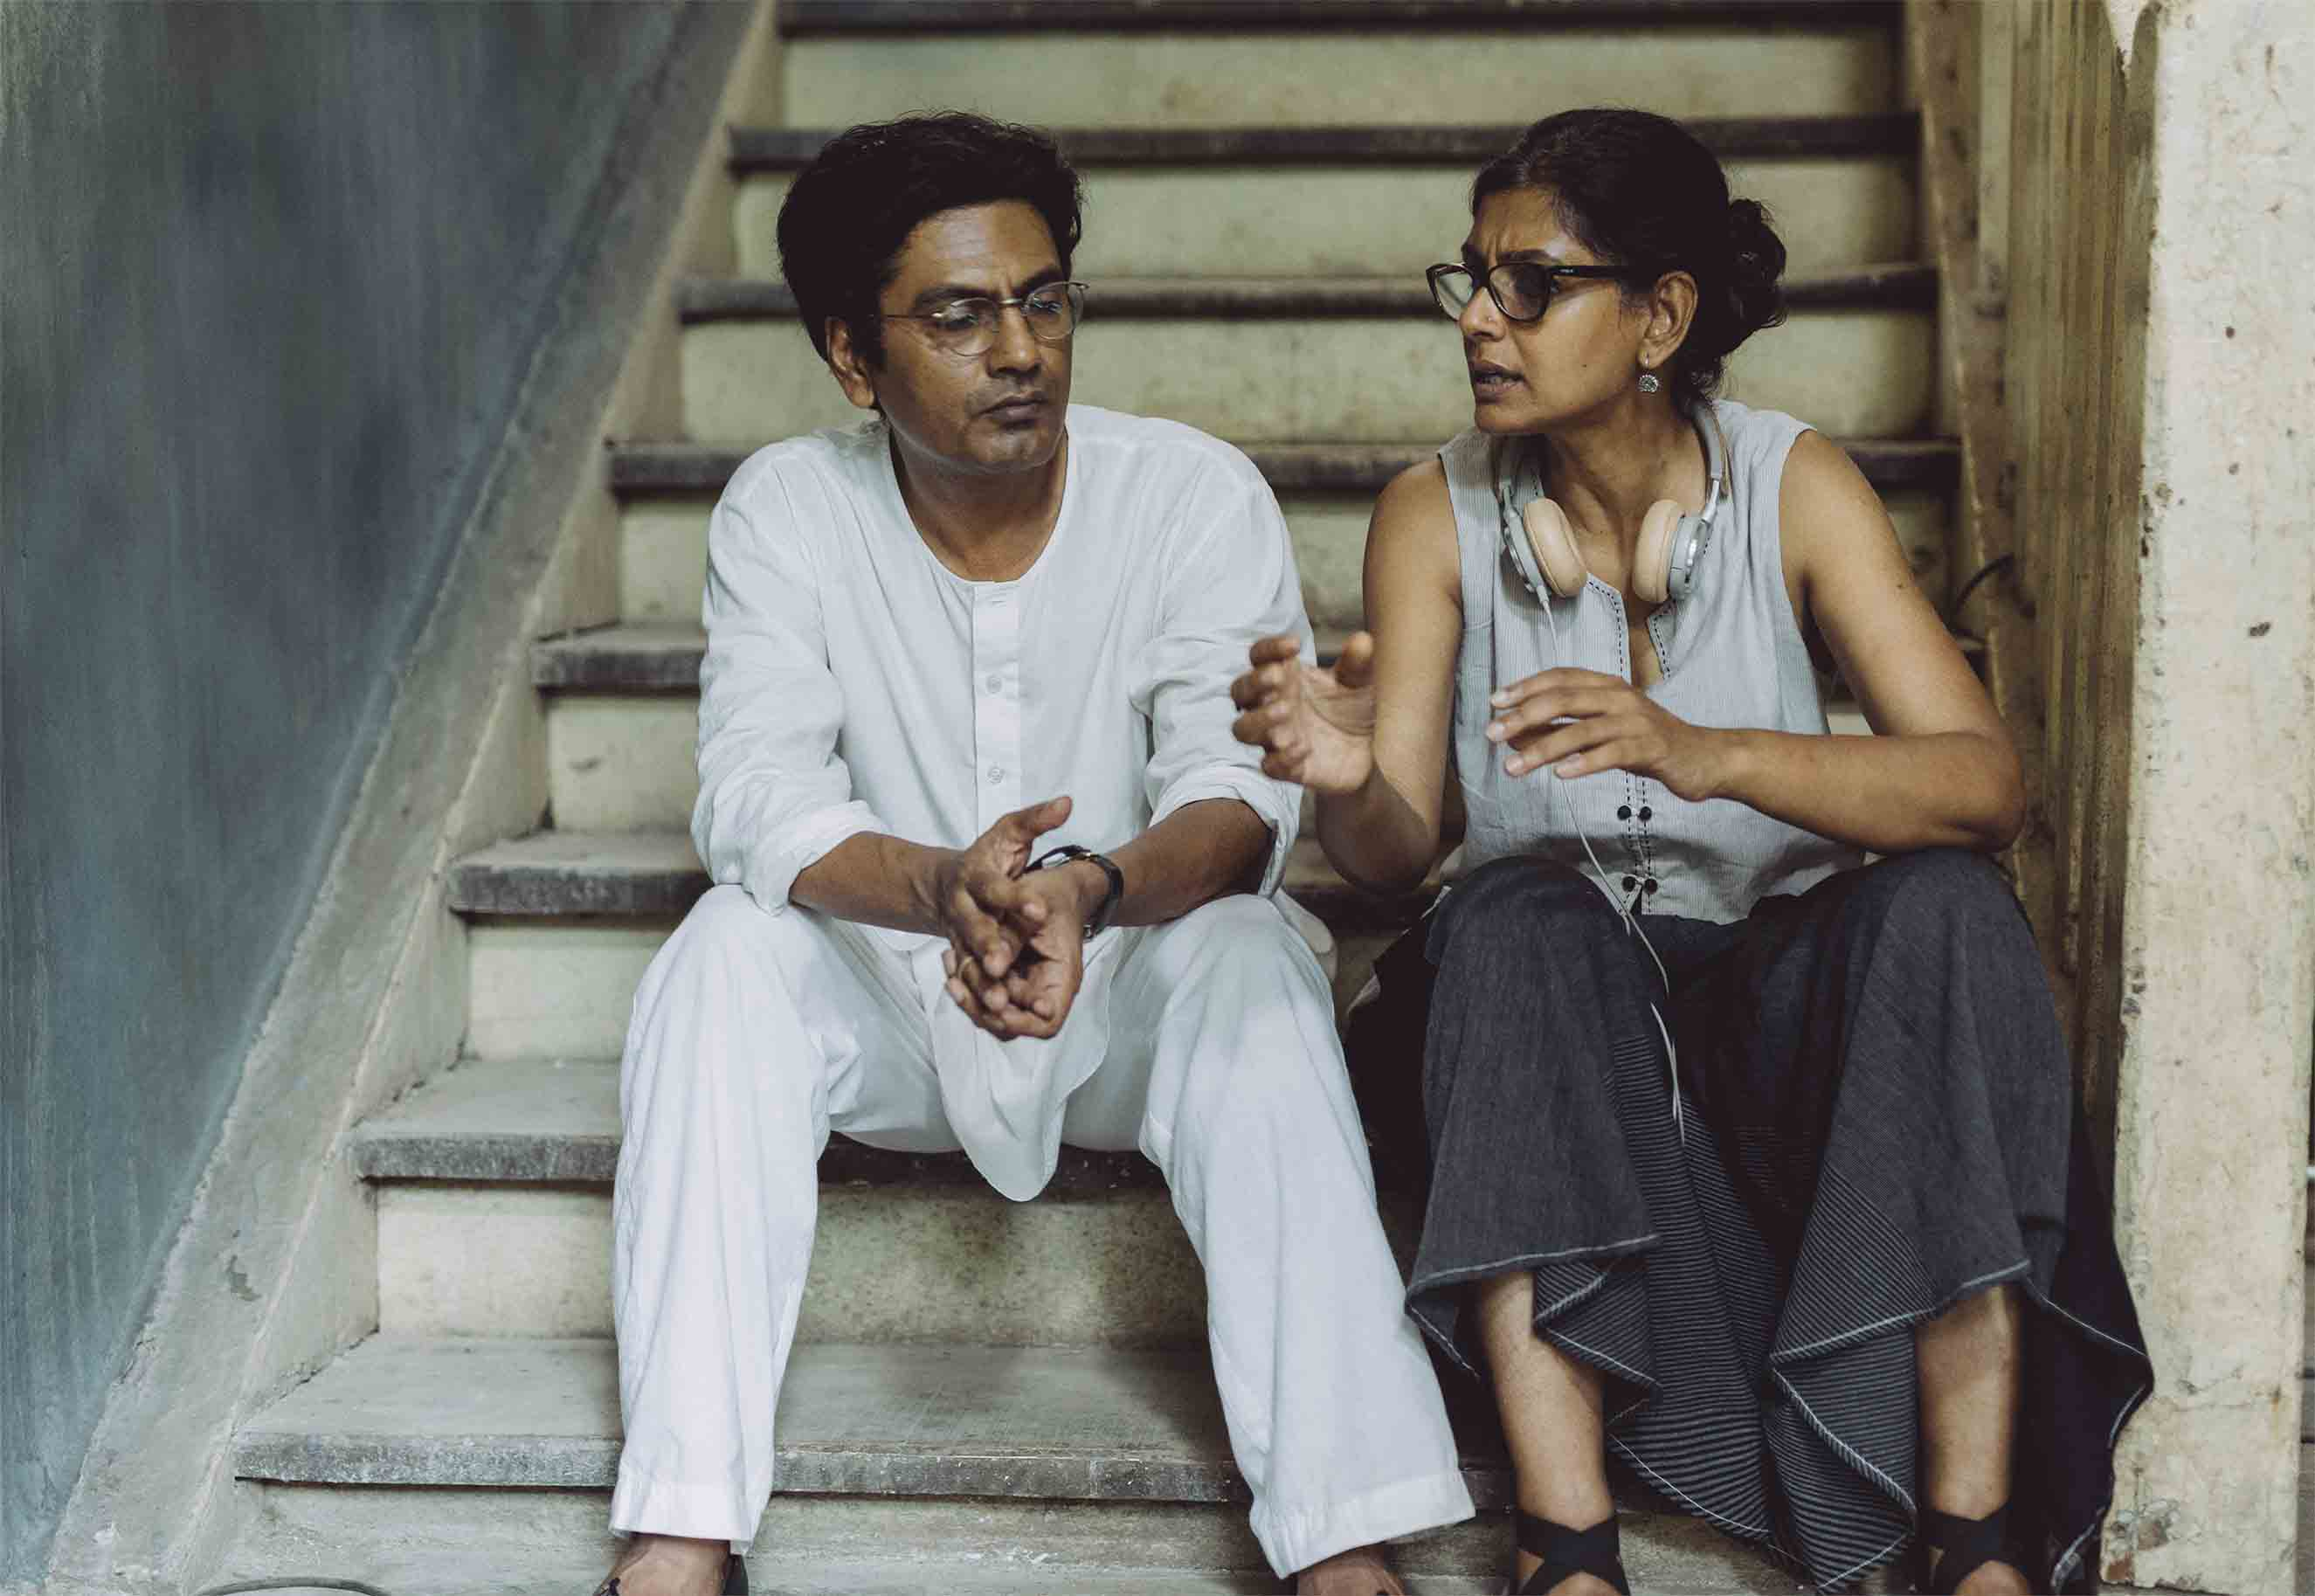 Bollywood, Cinema, Featured, Films, Indie Films, Manto, Nandita Das, Nawazuddin Siddiqui, Online Exclusive, Rasika Dugal